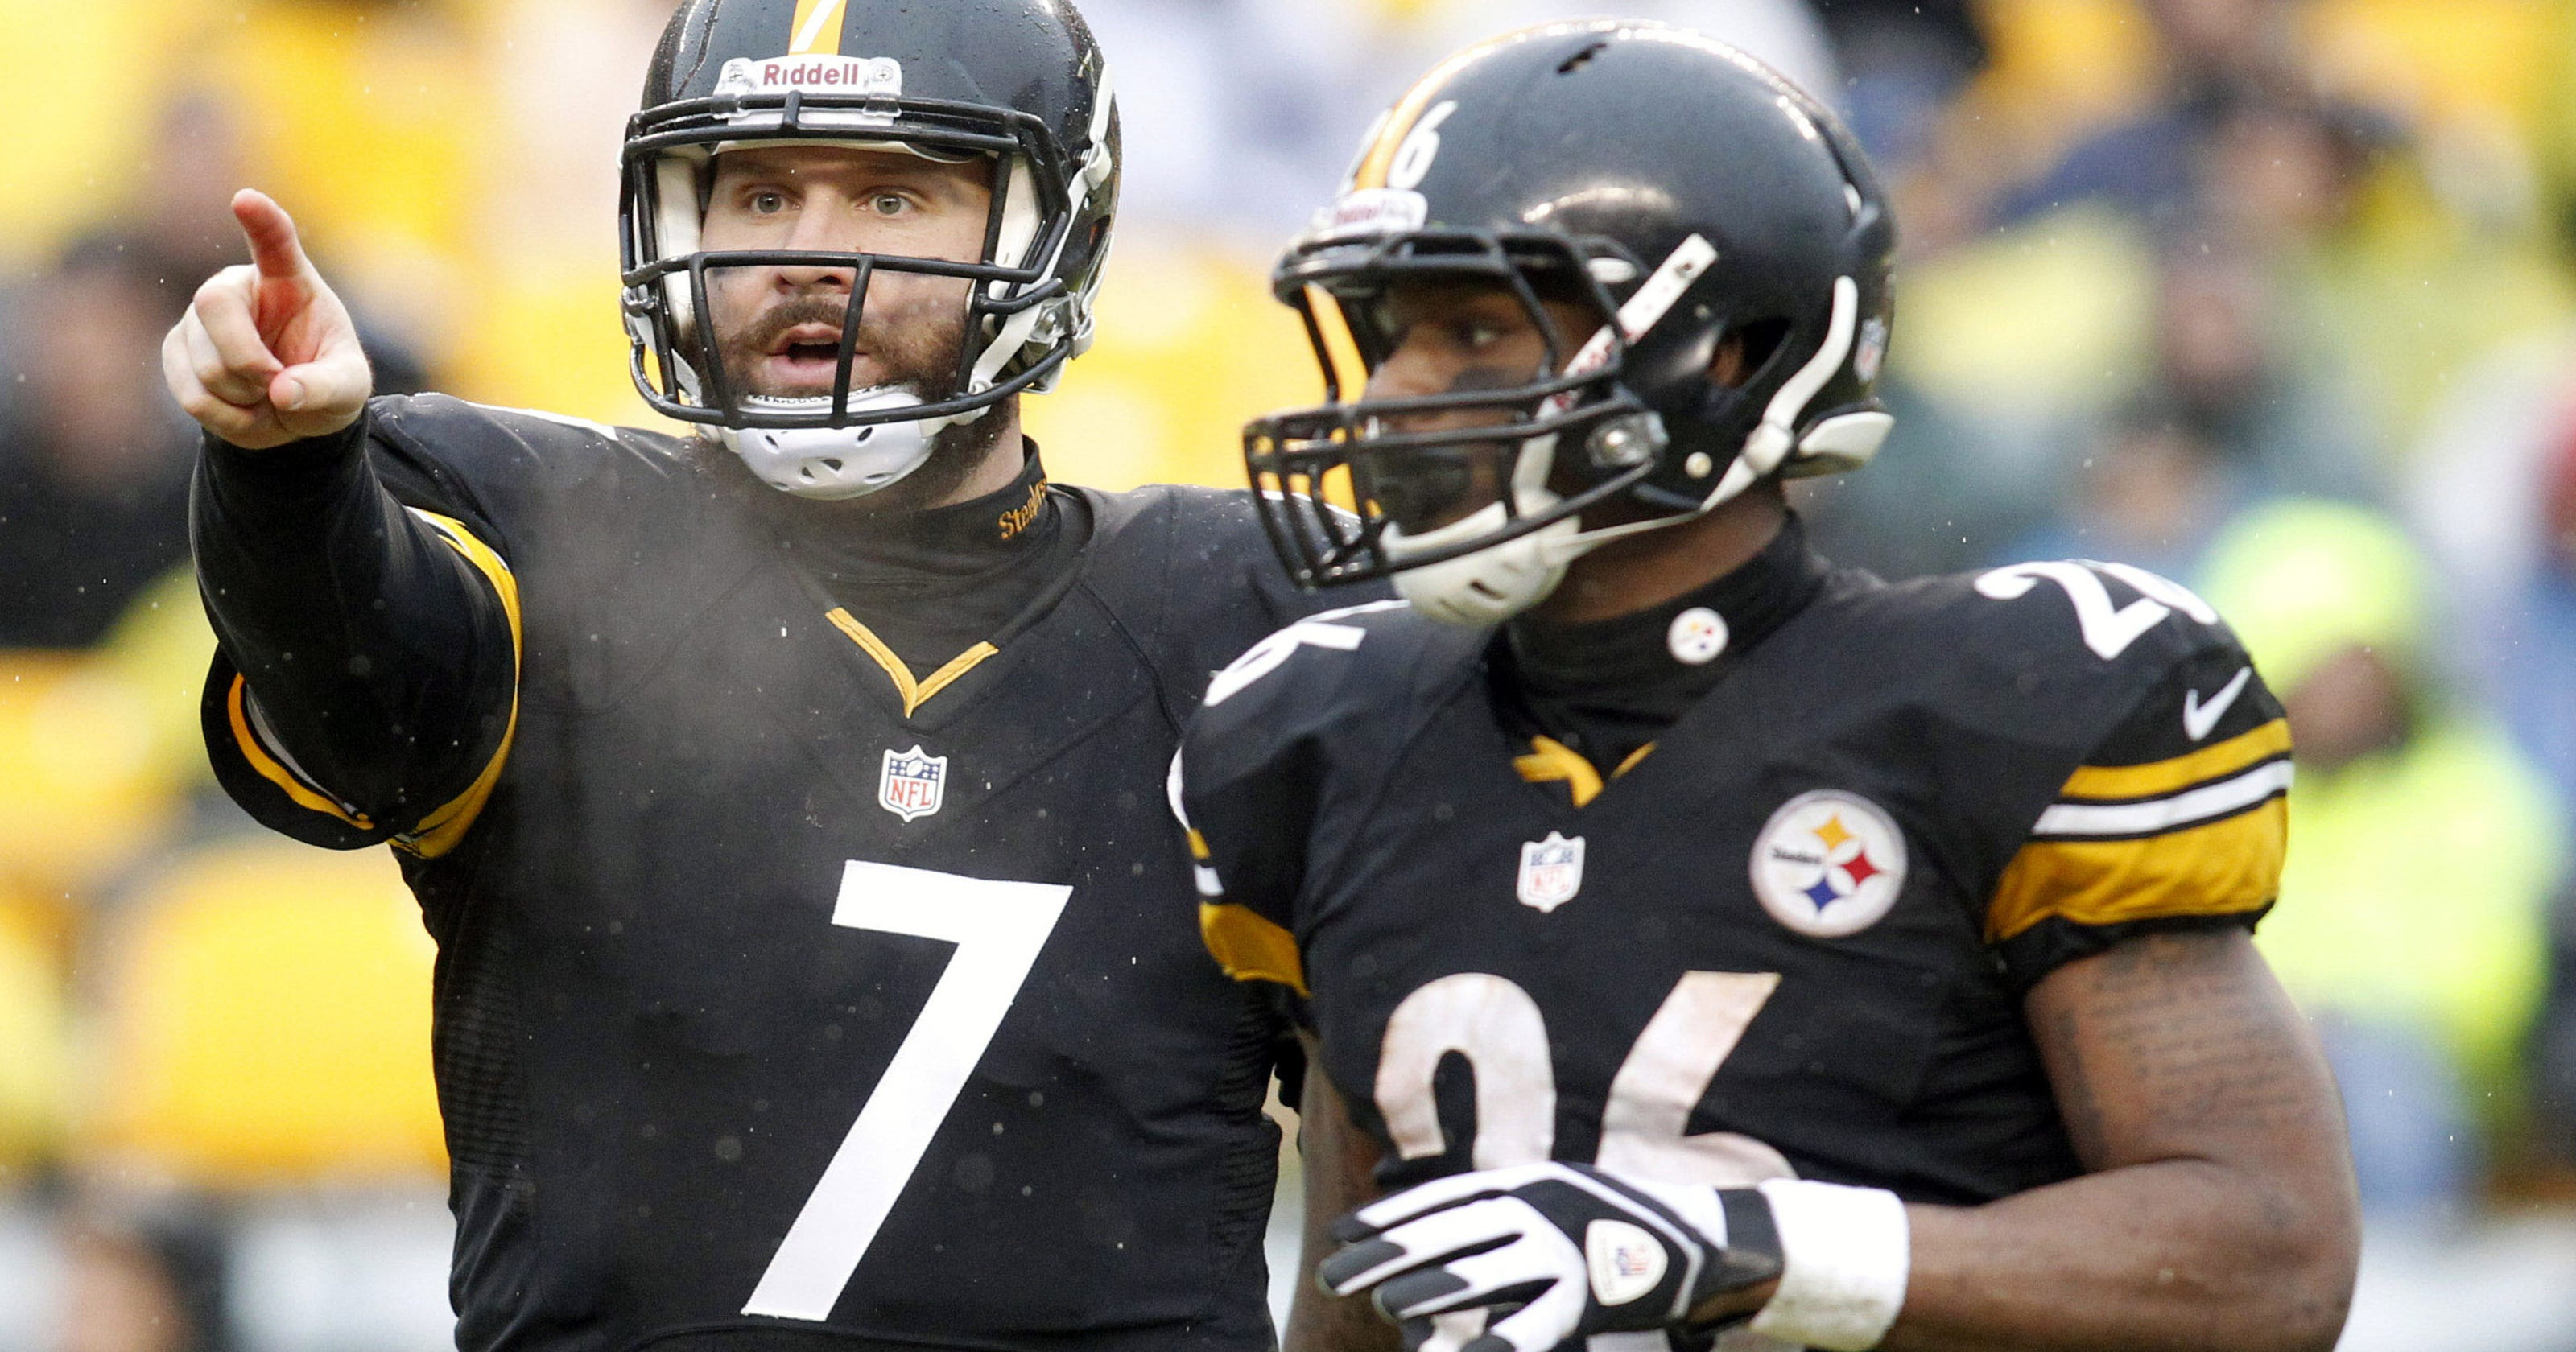 343a4ca8249 Steelers offseason report: Healthy Pittsburgh squad is a dangerous one